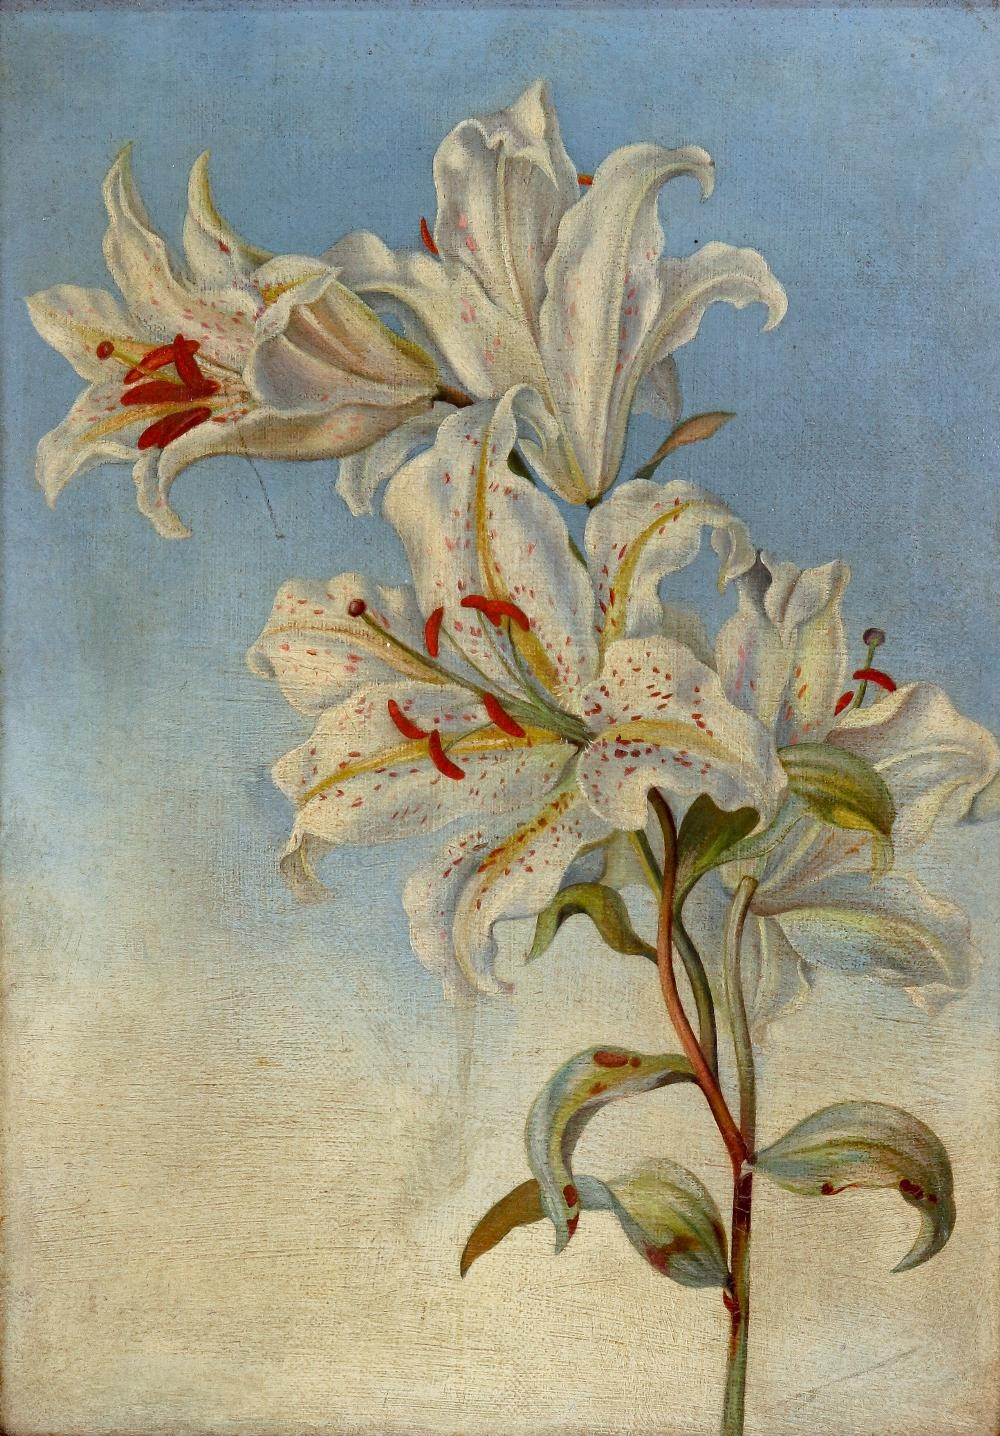 Alice Mary Mansford (British, 19th Century), Still life of lilies, inscribed 'Alice Mary Mansford